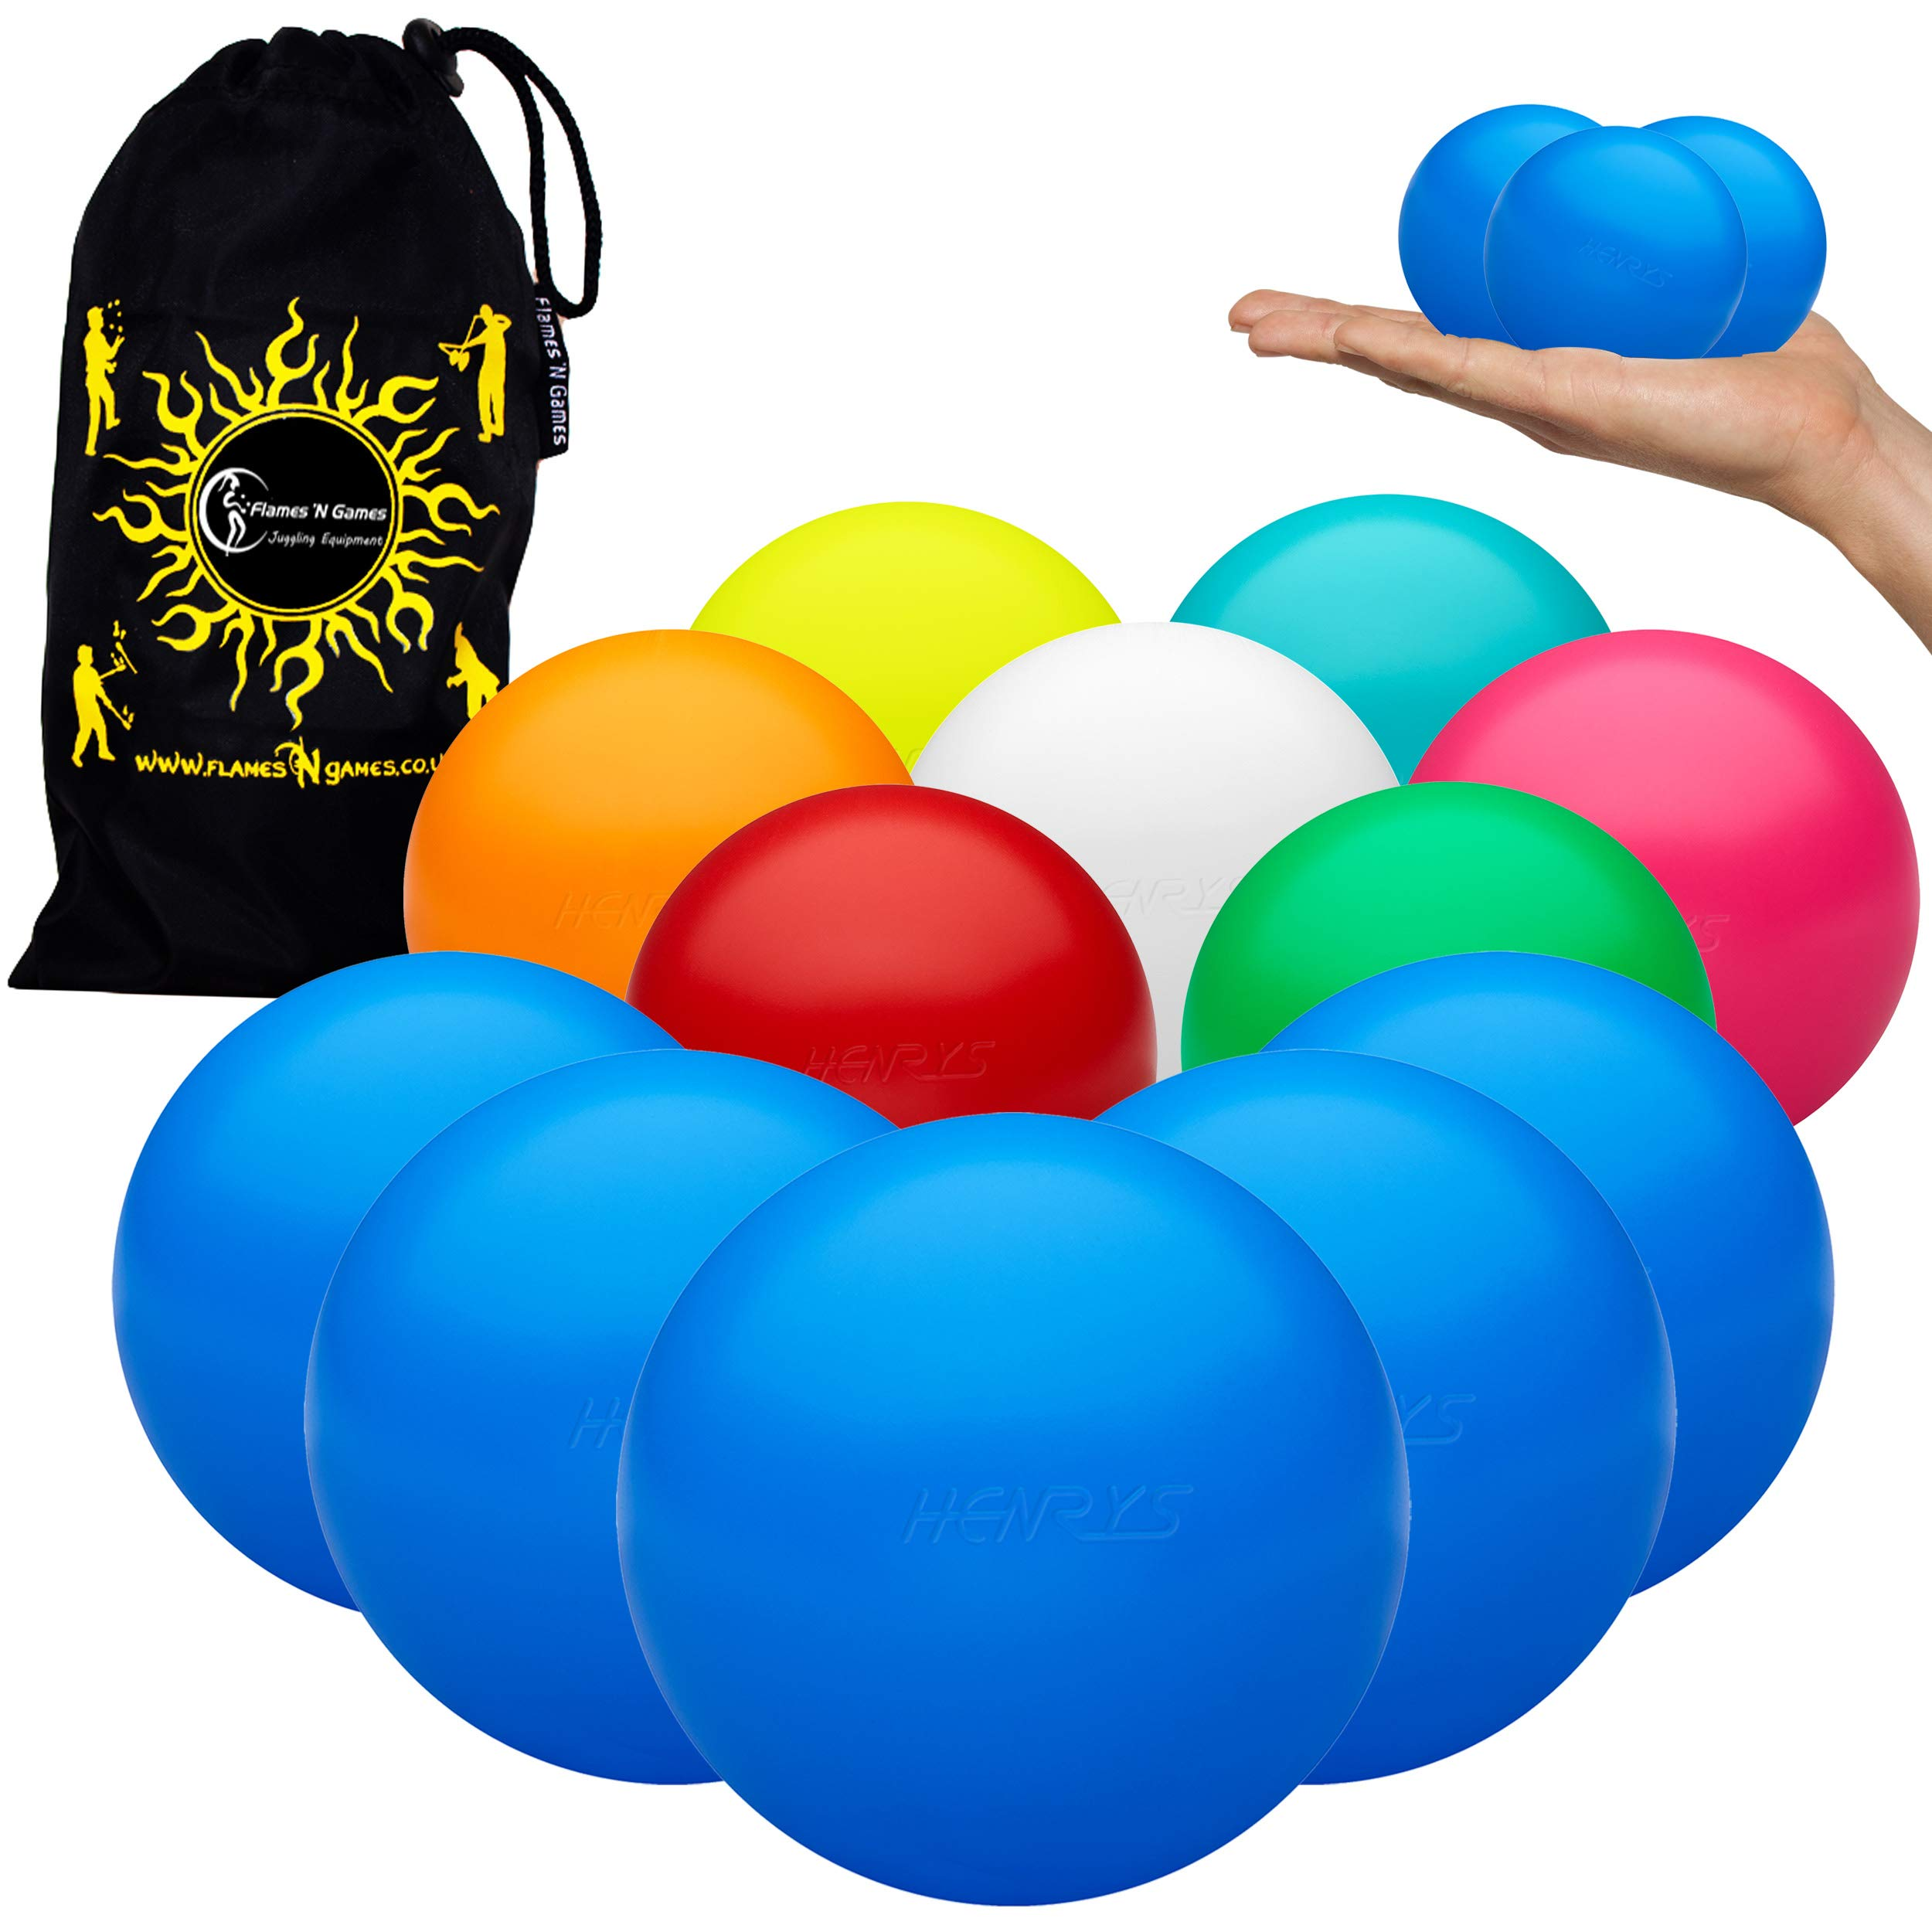 Henrys Set of 5 TPU 62mm HiX-Ball Hybrid Juggling Balls + Bag - World's First PVC-Free Pro Juggling/Stage Balls for All Abilities! (Green) by Henrys / Flames N Games